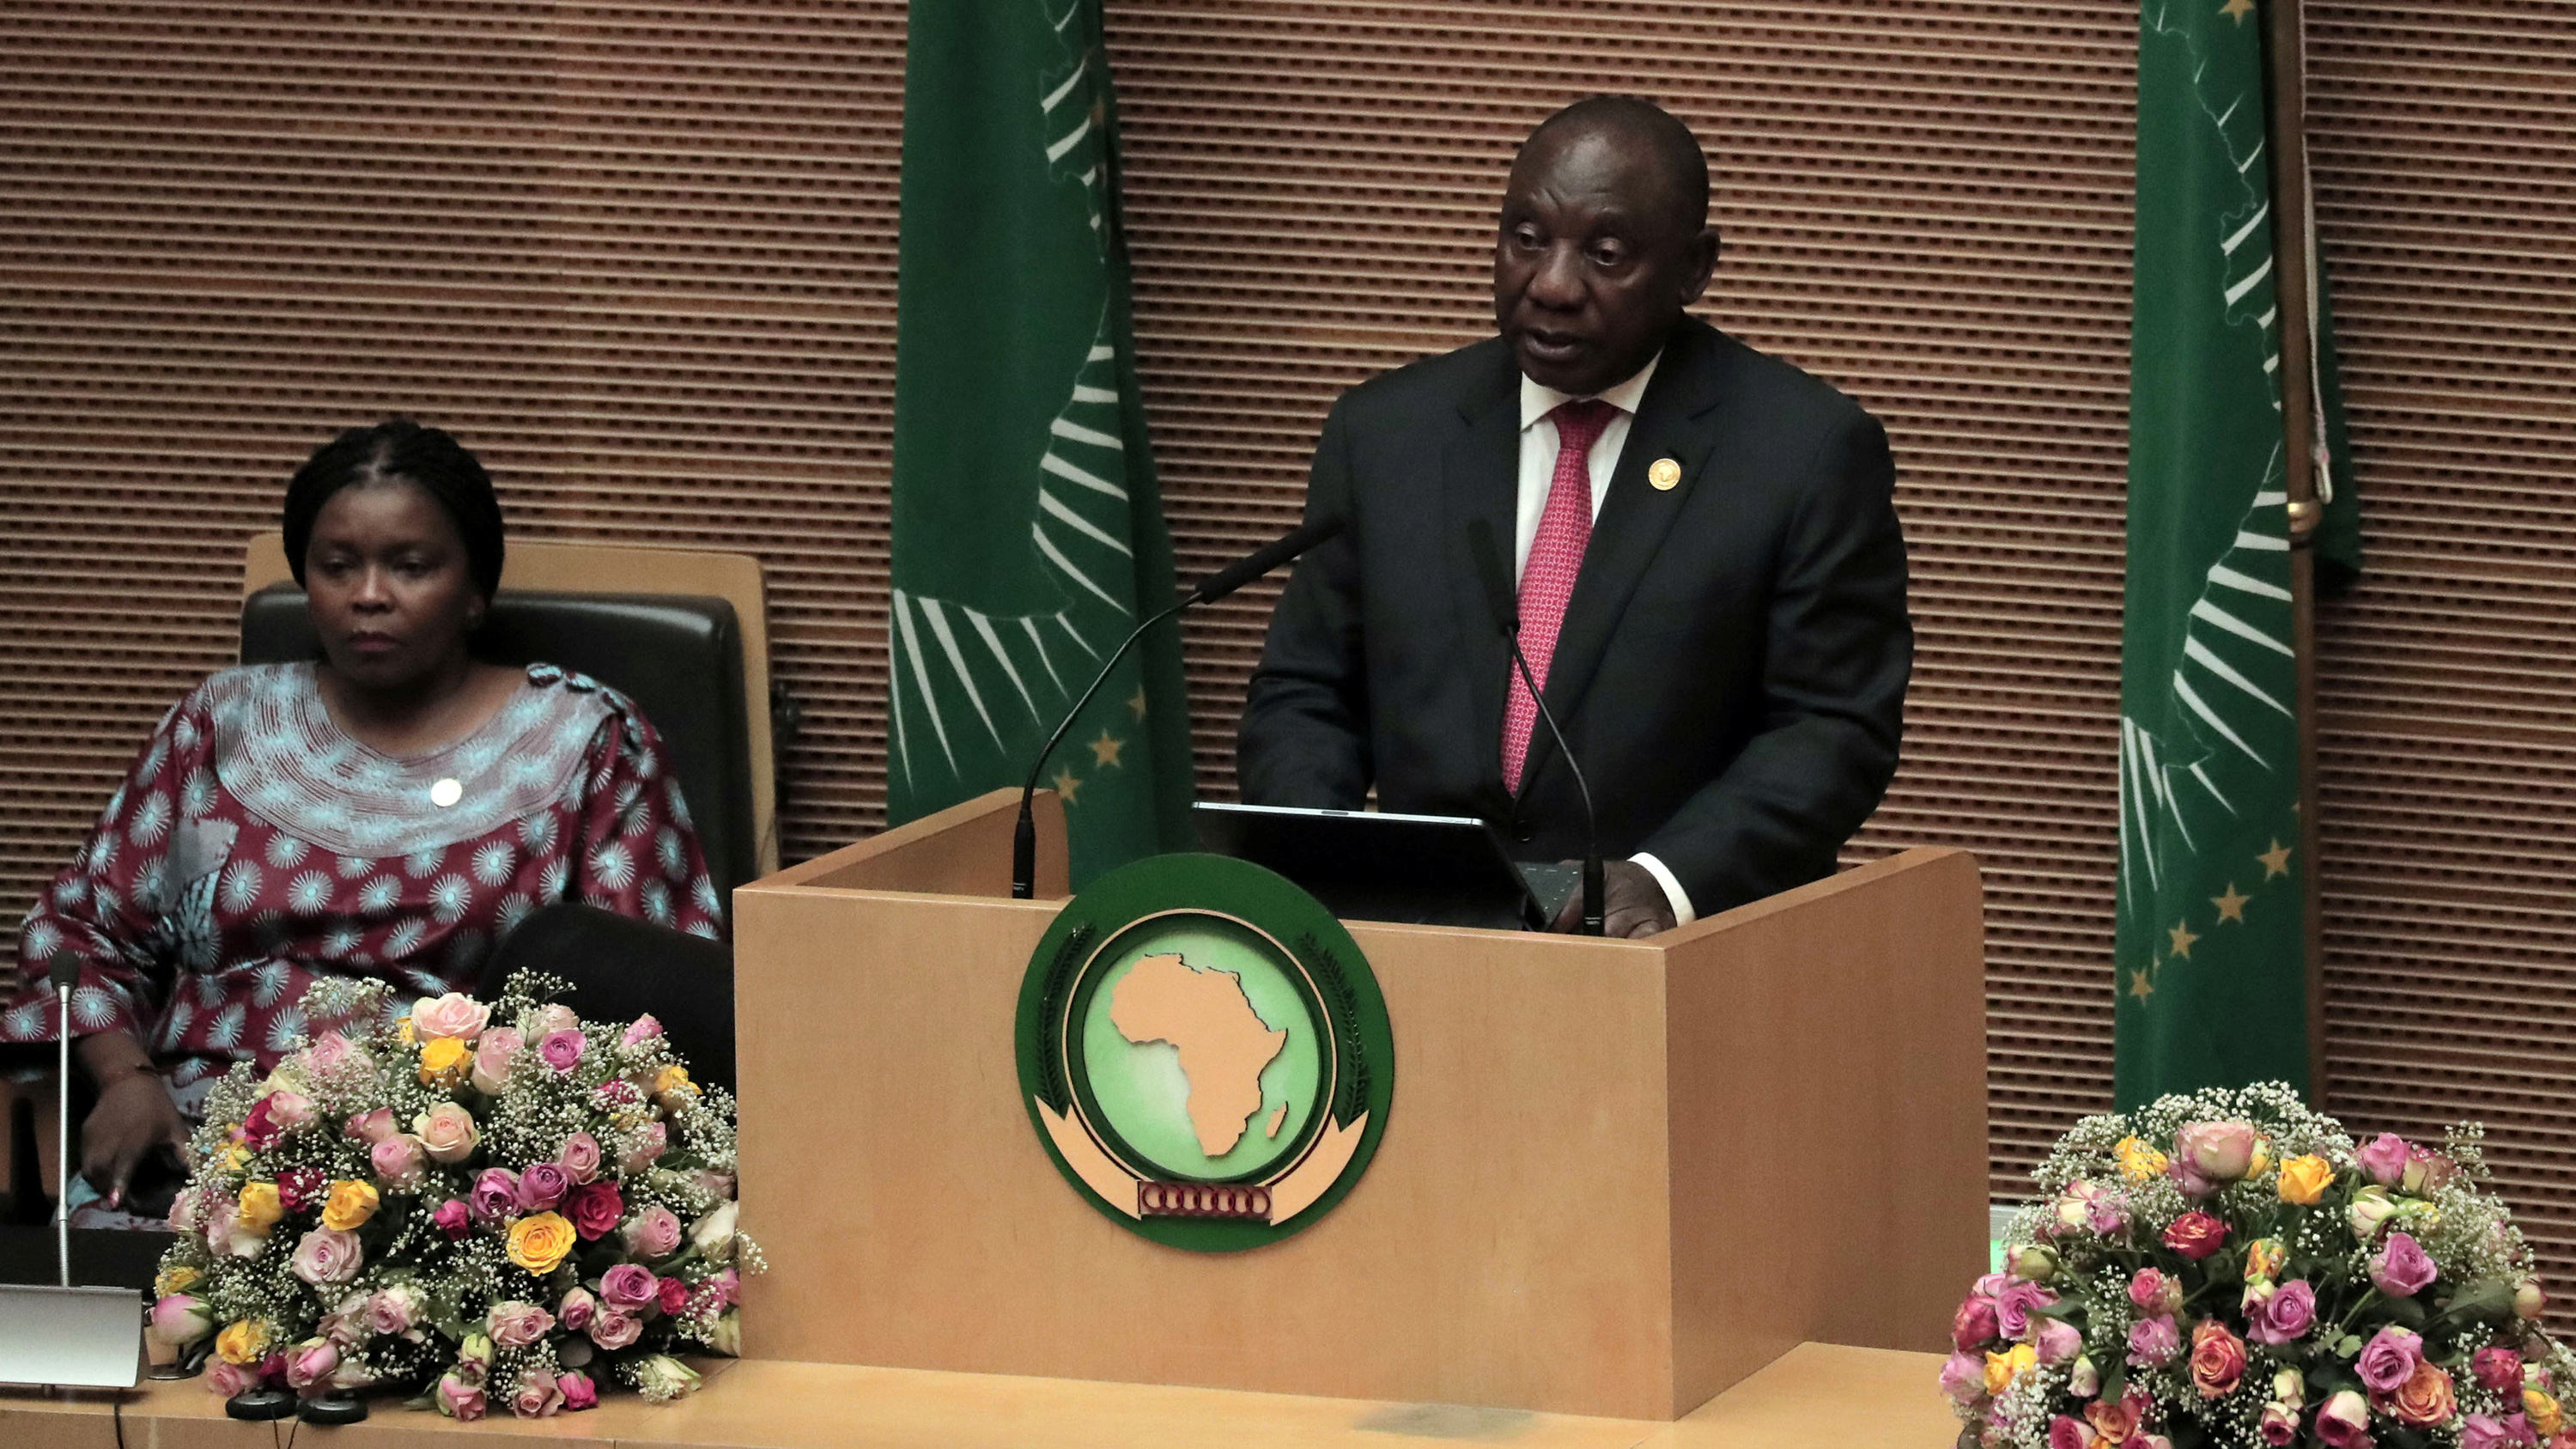 The photo shows the South African president at a podium speaking into a microphone.